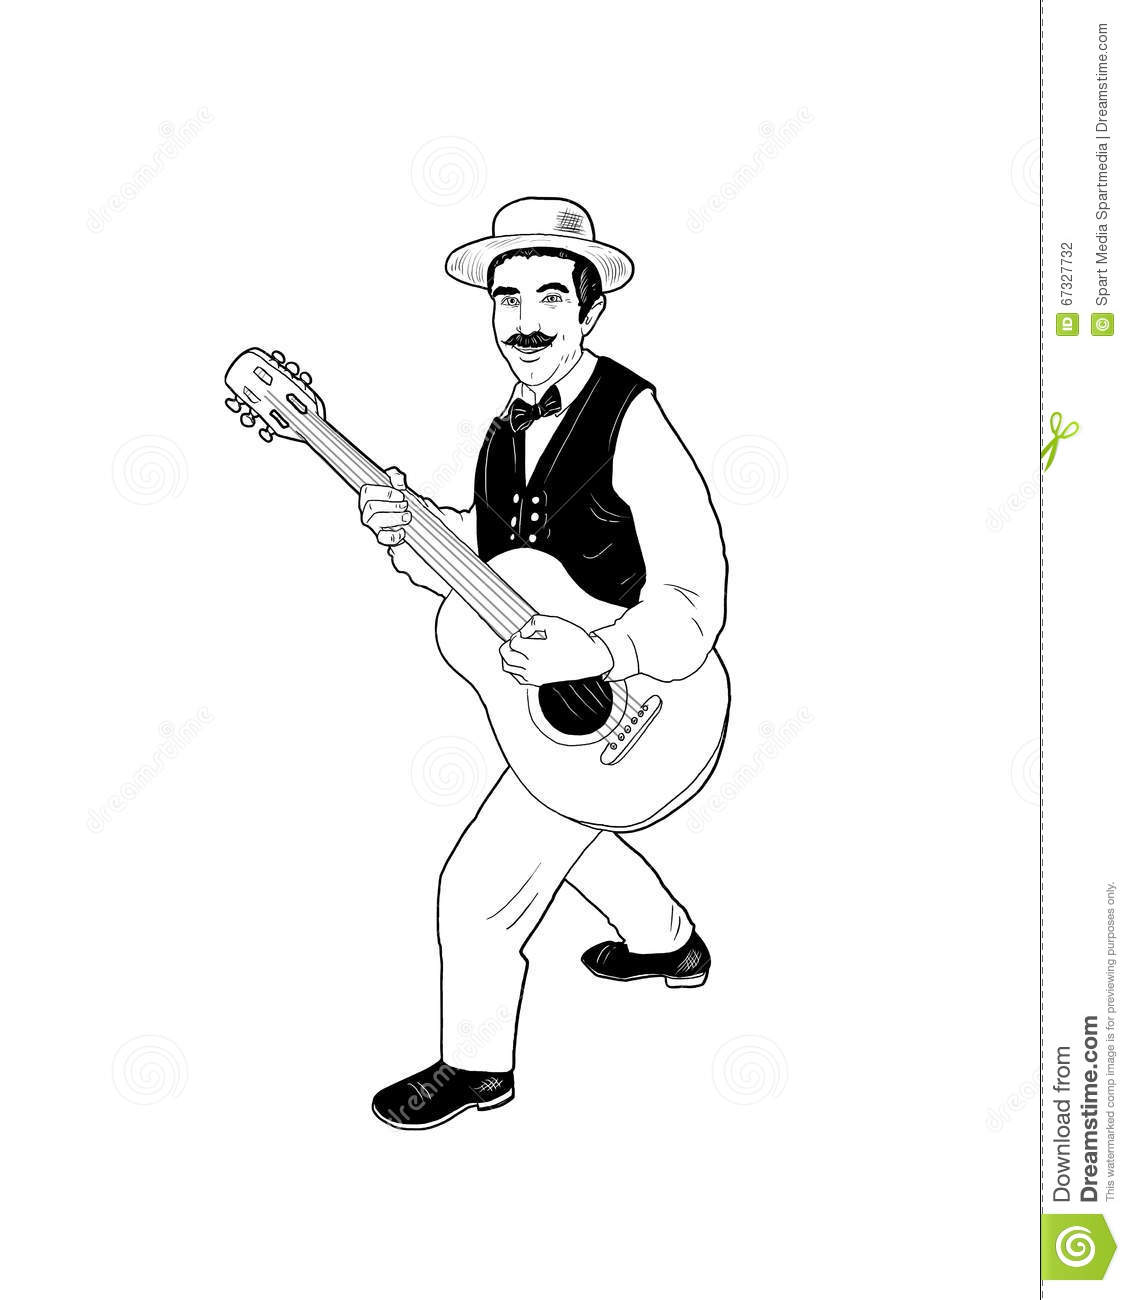 Guitarist plays music sketch stock illustration